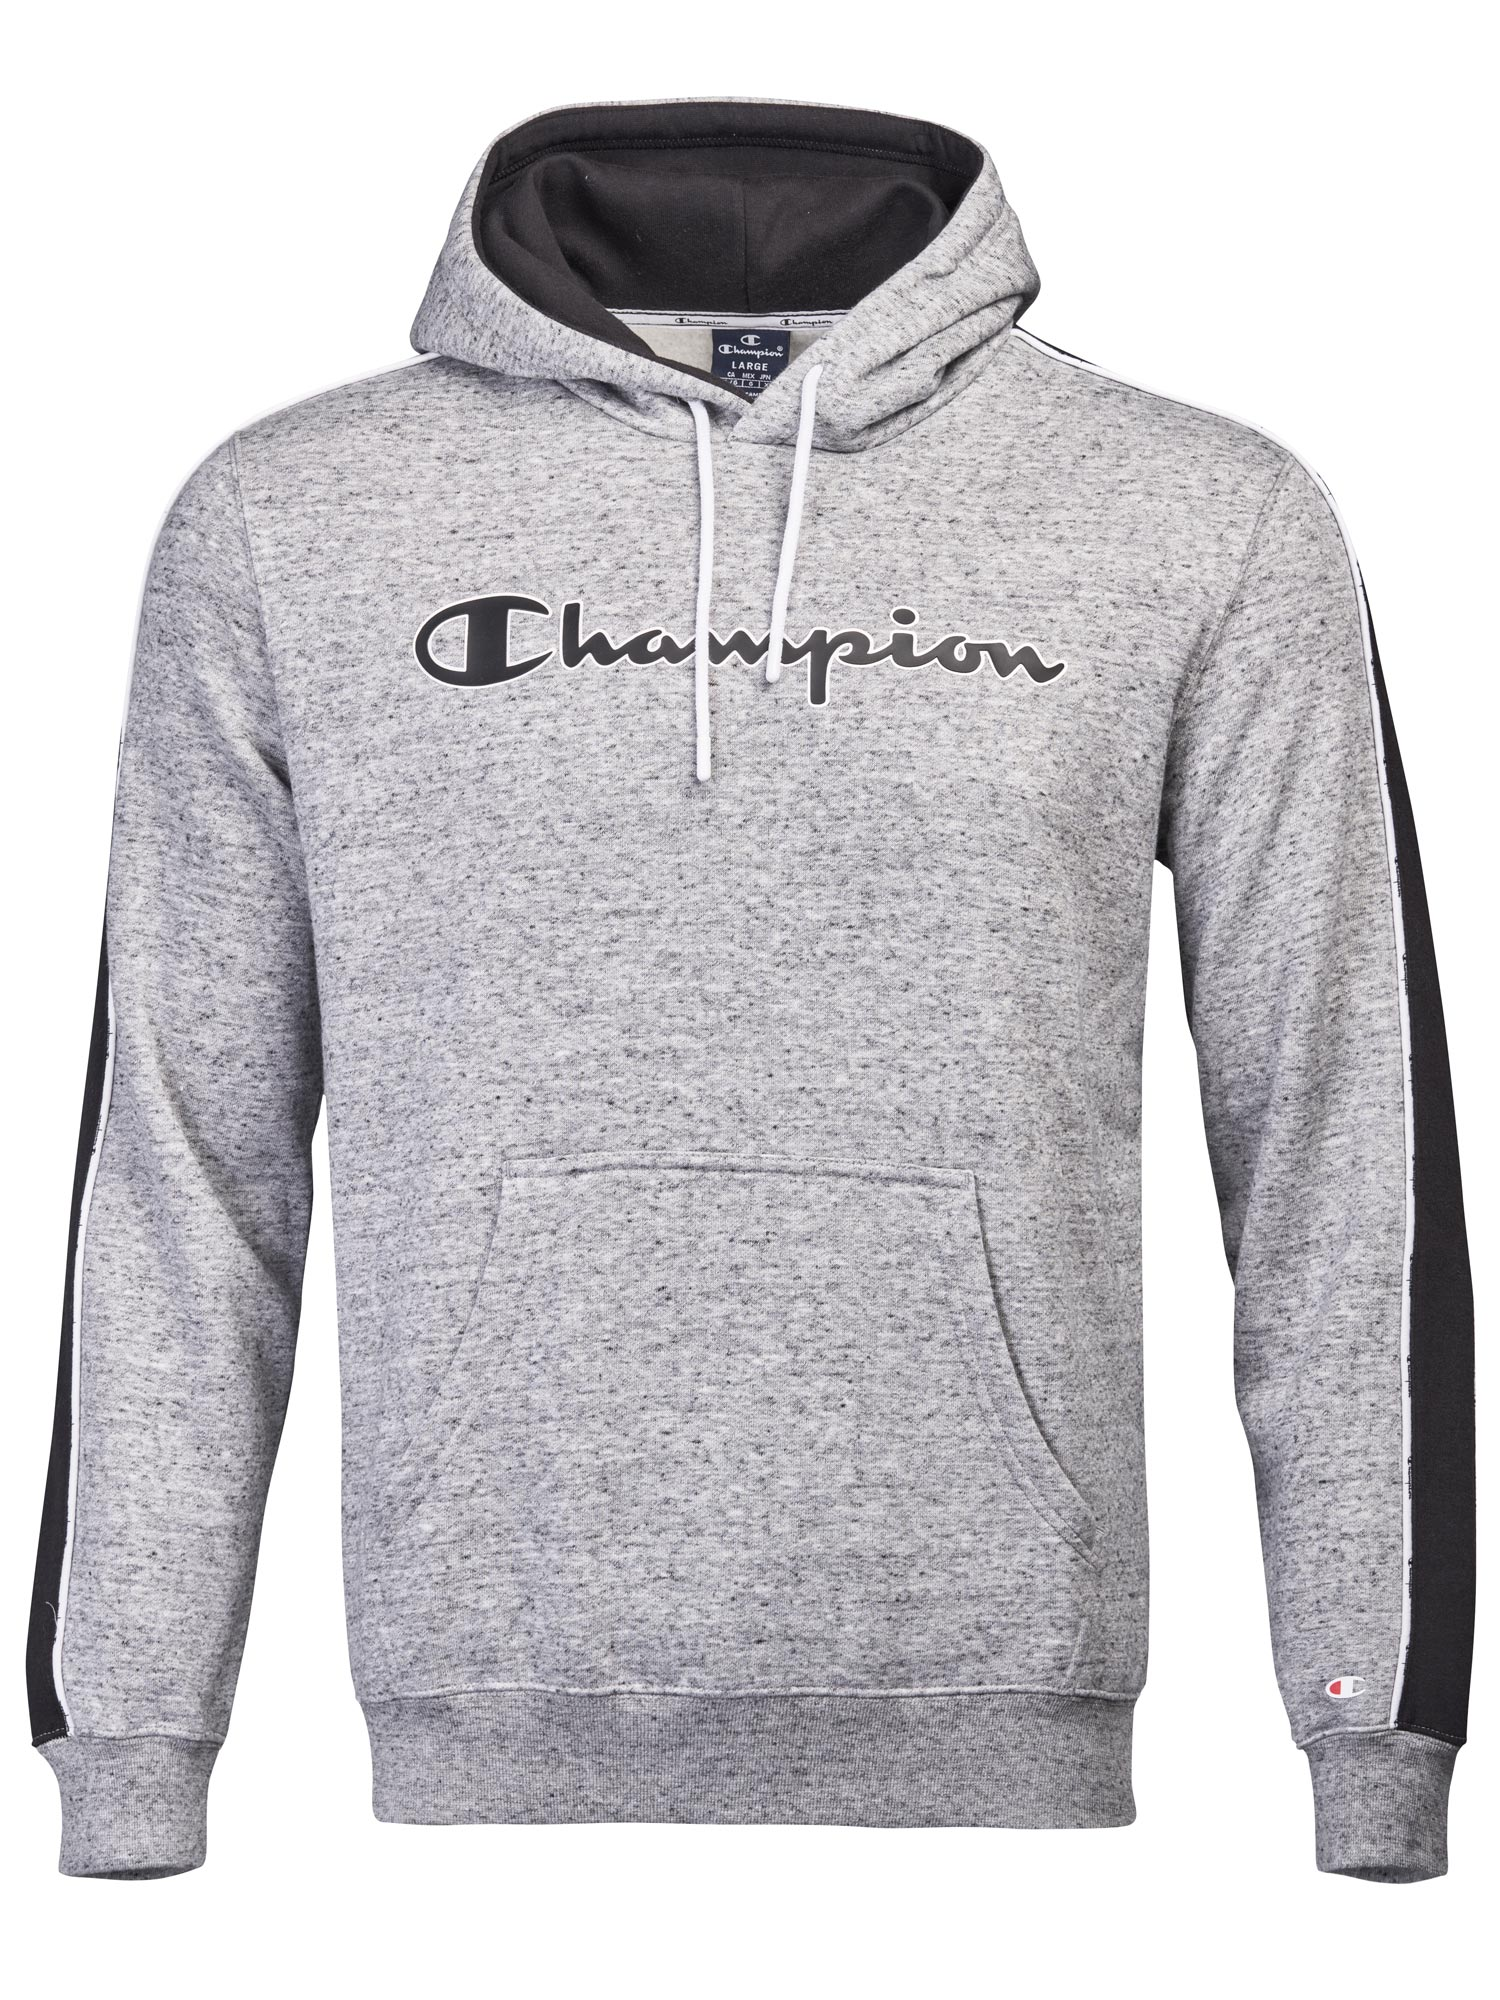 CHAMPION Суитшърт Hooded Sweatshirt Размери-M /L /XL /XXL